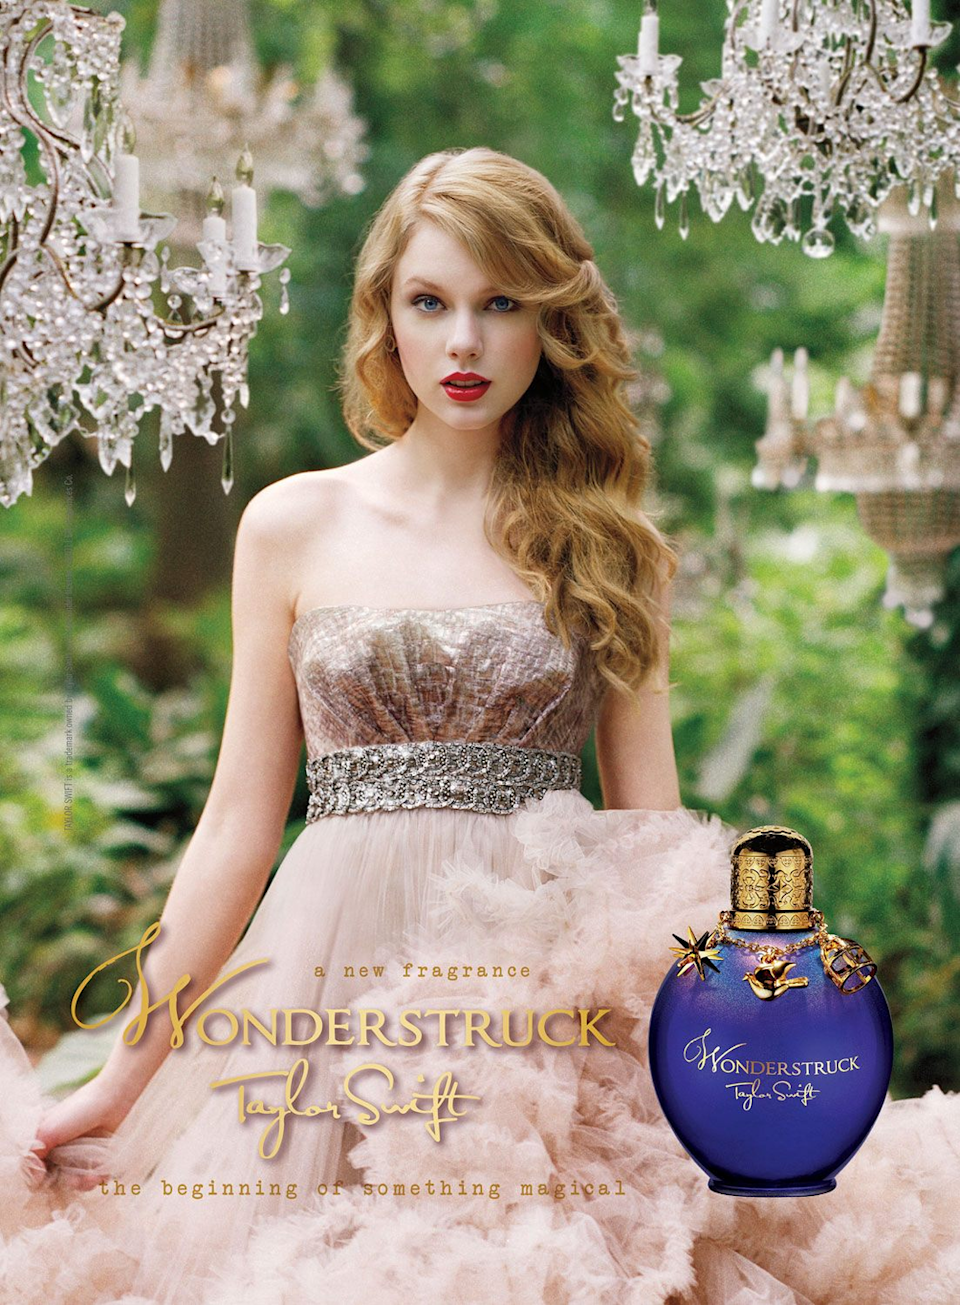 <p>Are the number of chandeliers an Easter egg about Taylor Swift's next studio album? IDK YOU TELL ME. </p>